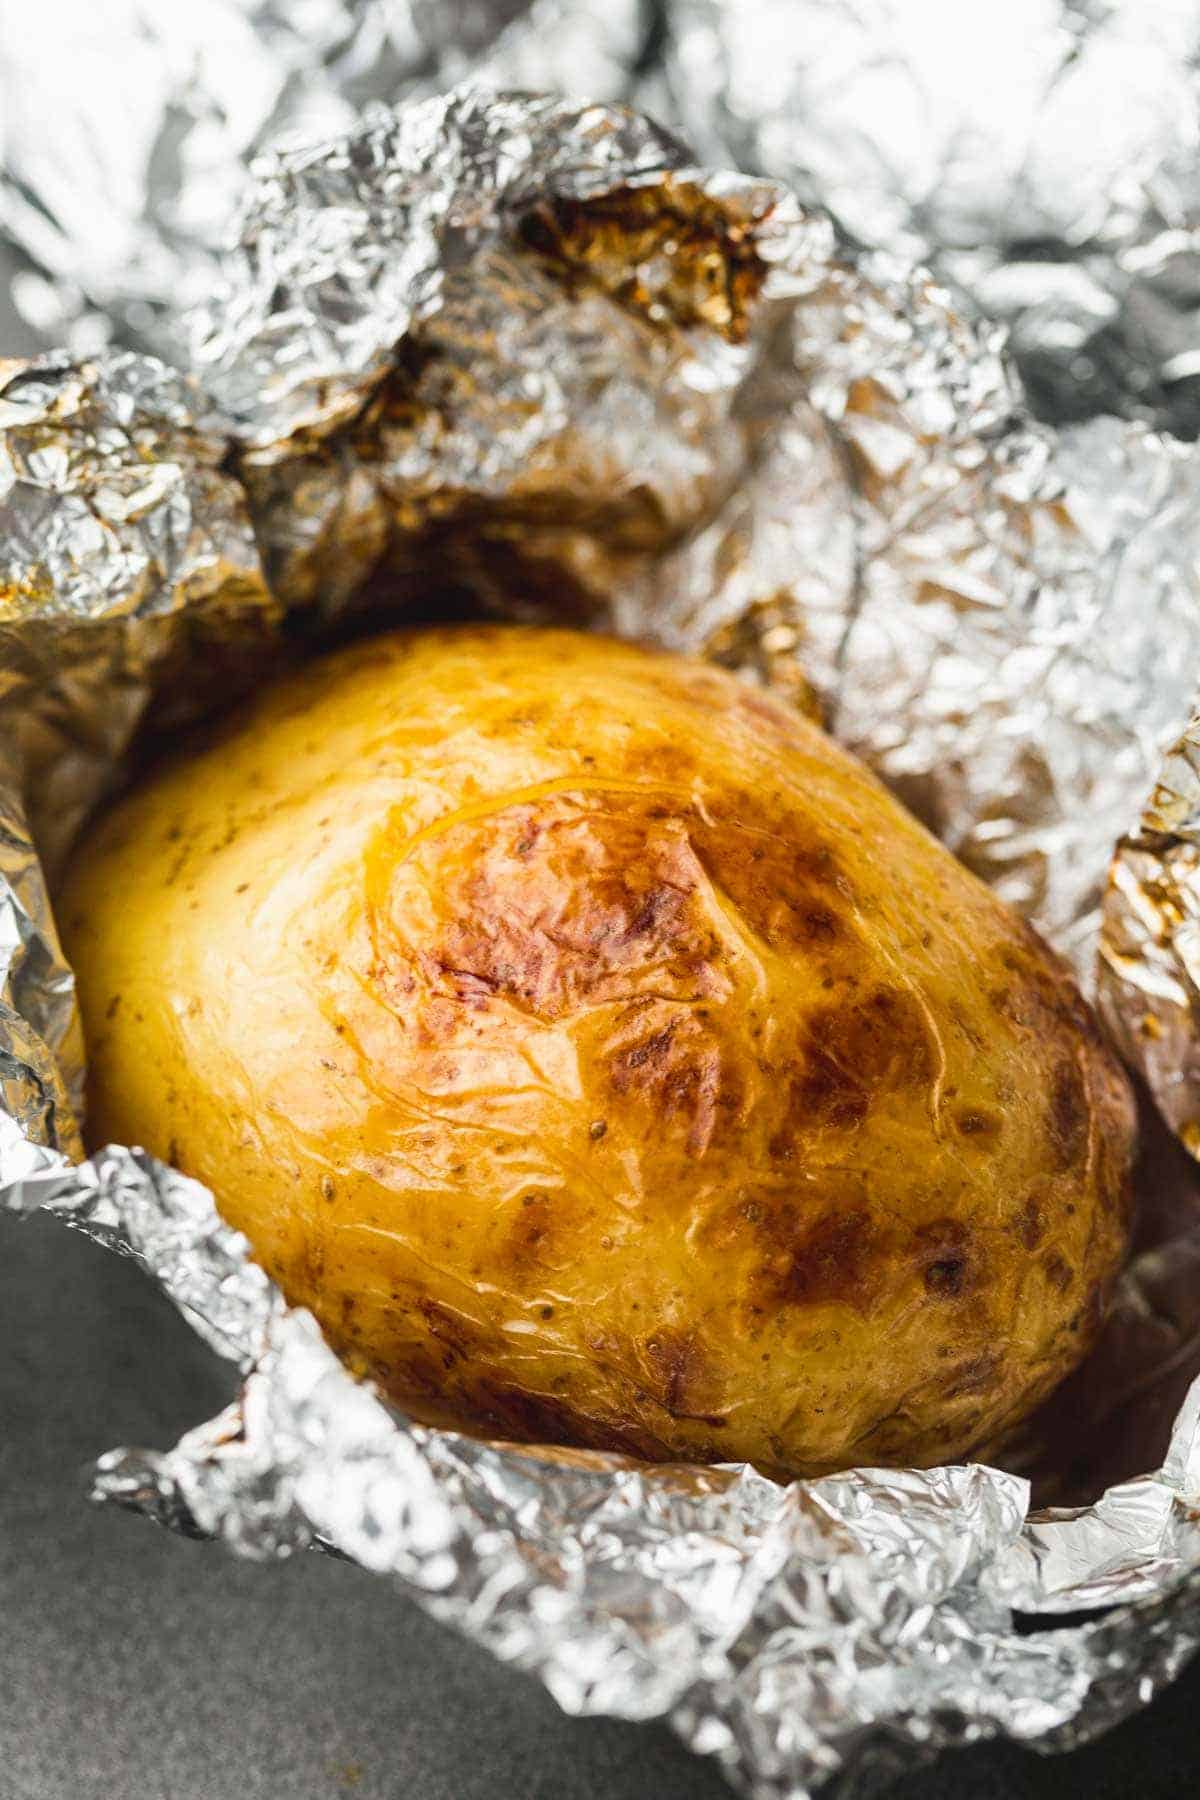 Baked potato on the grill is ready and unwrapped with crisp skin